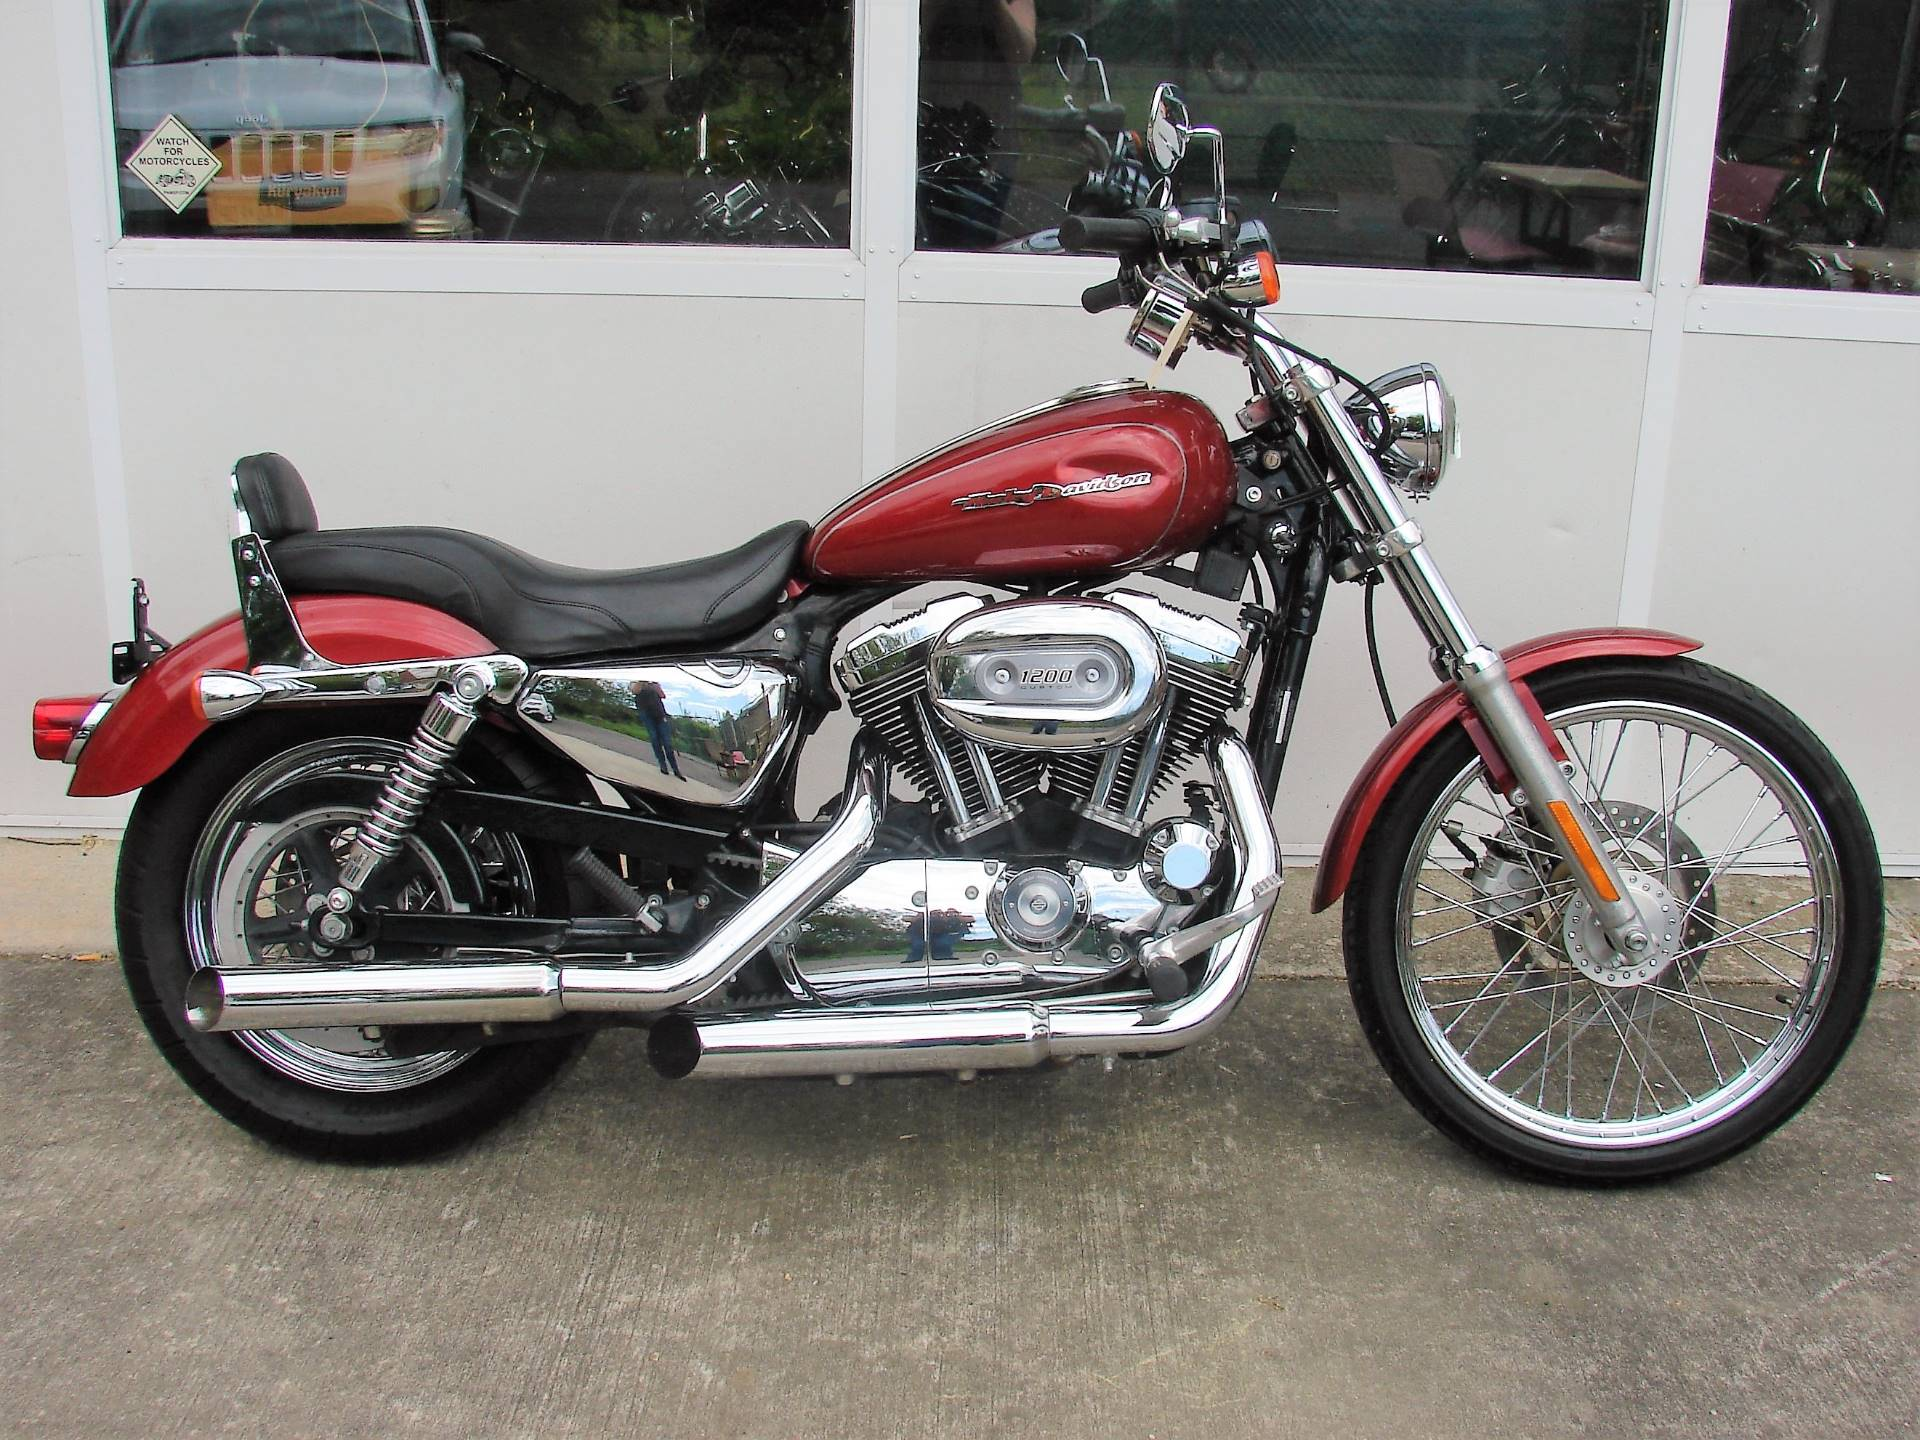 2006 Harley-Davidson XL 1200C Sportster Custom in Williamstown, New Jersey - Photo 1